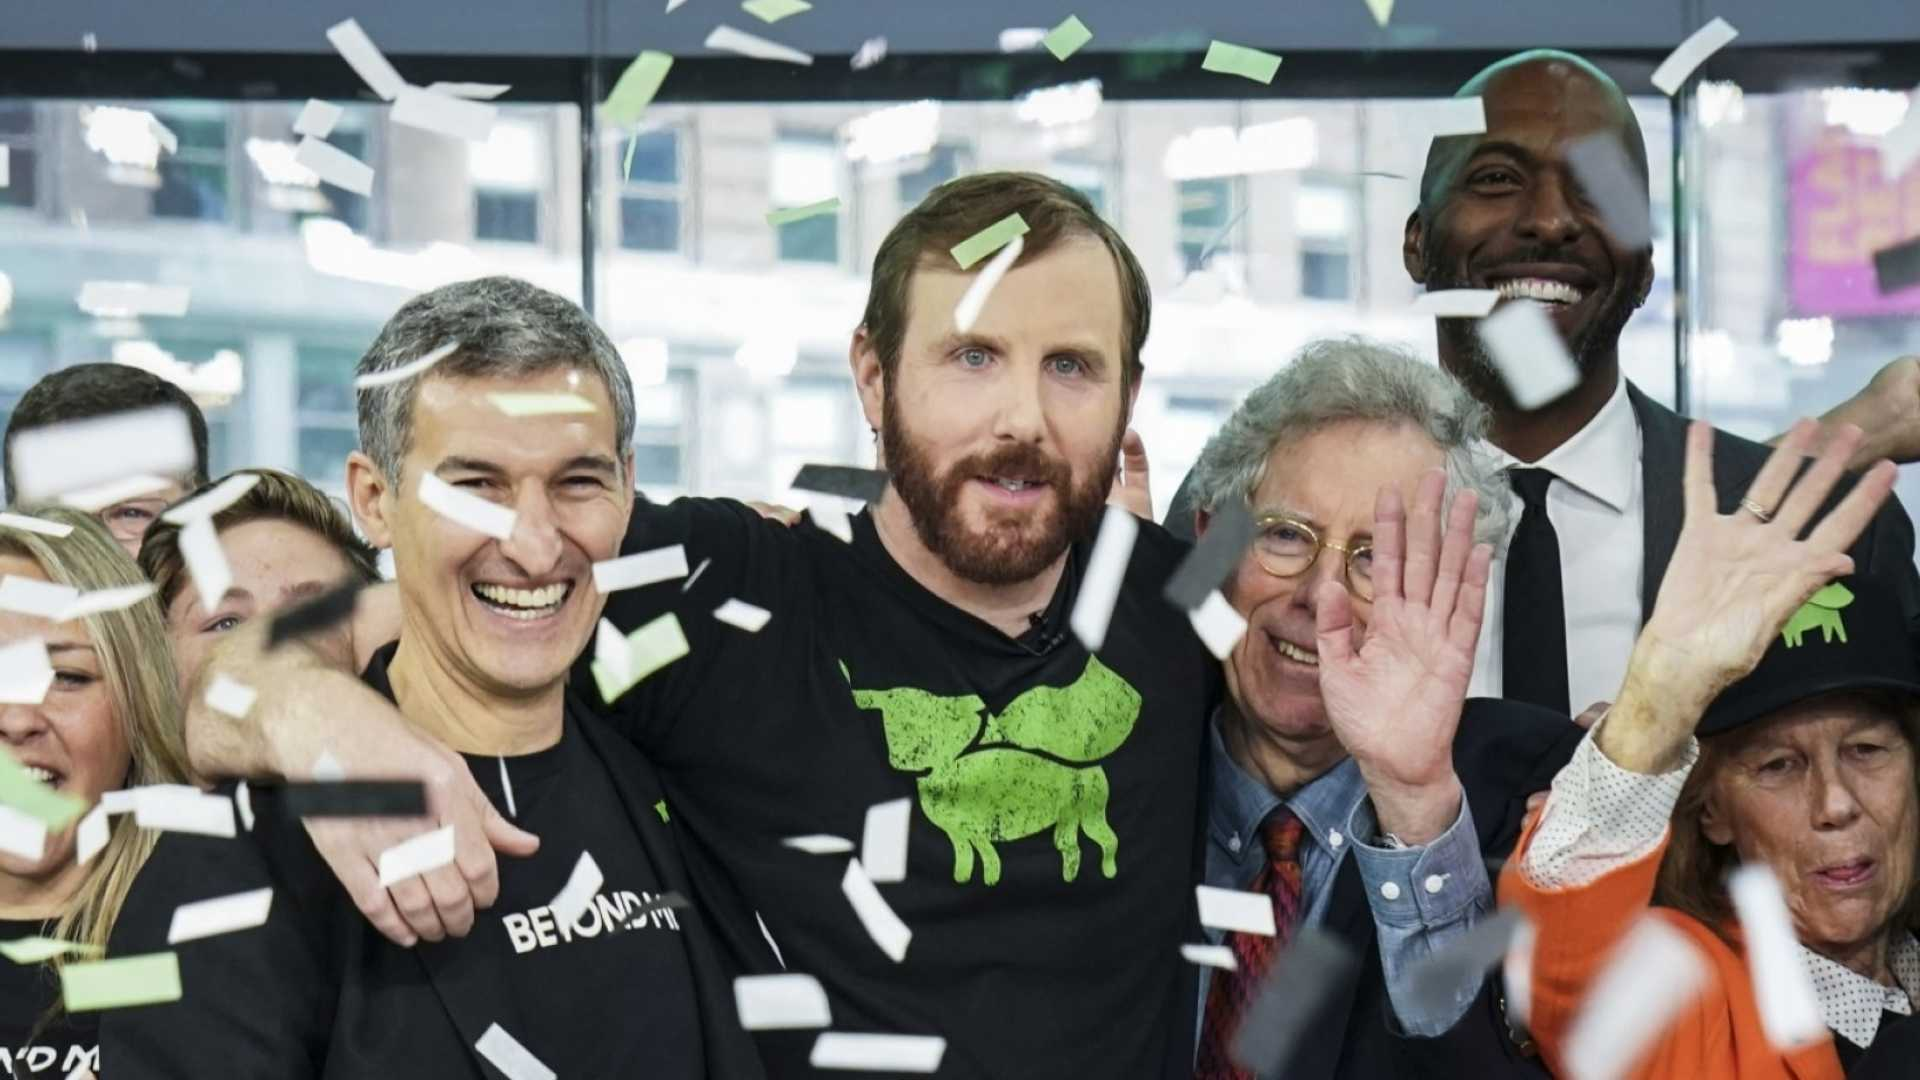 Beyond Meat founder Ethan Brown (center) during the company's hugely successful IPO.